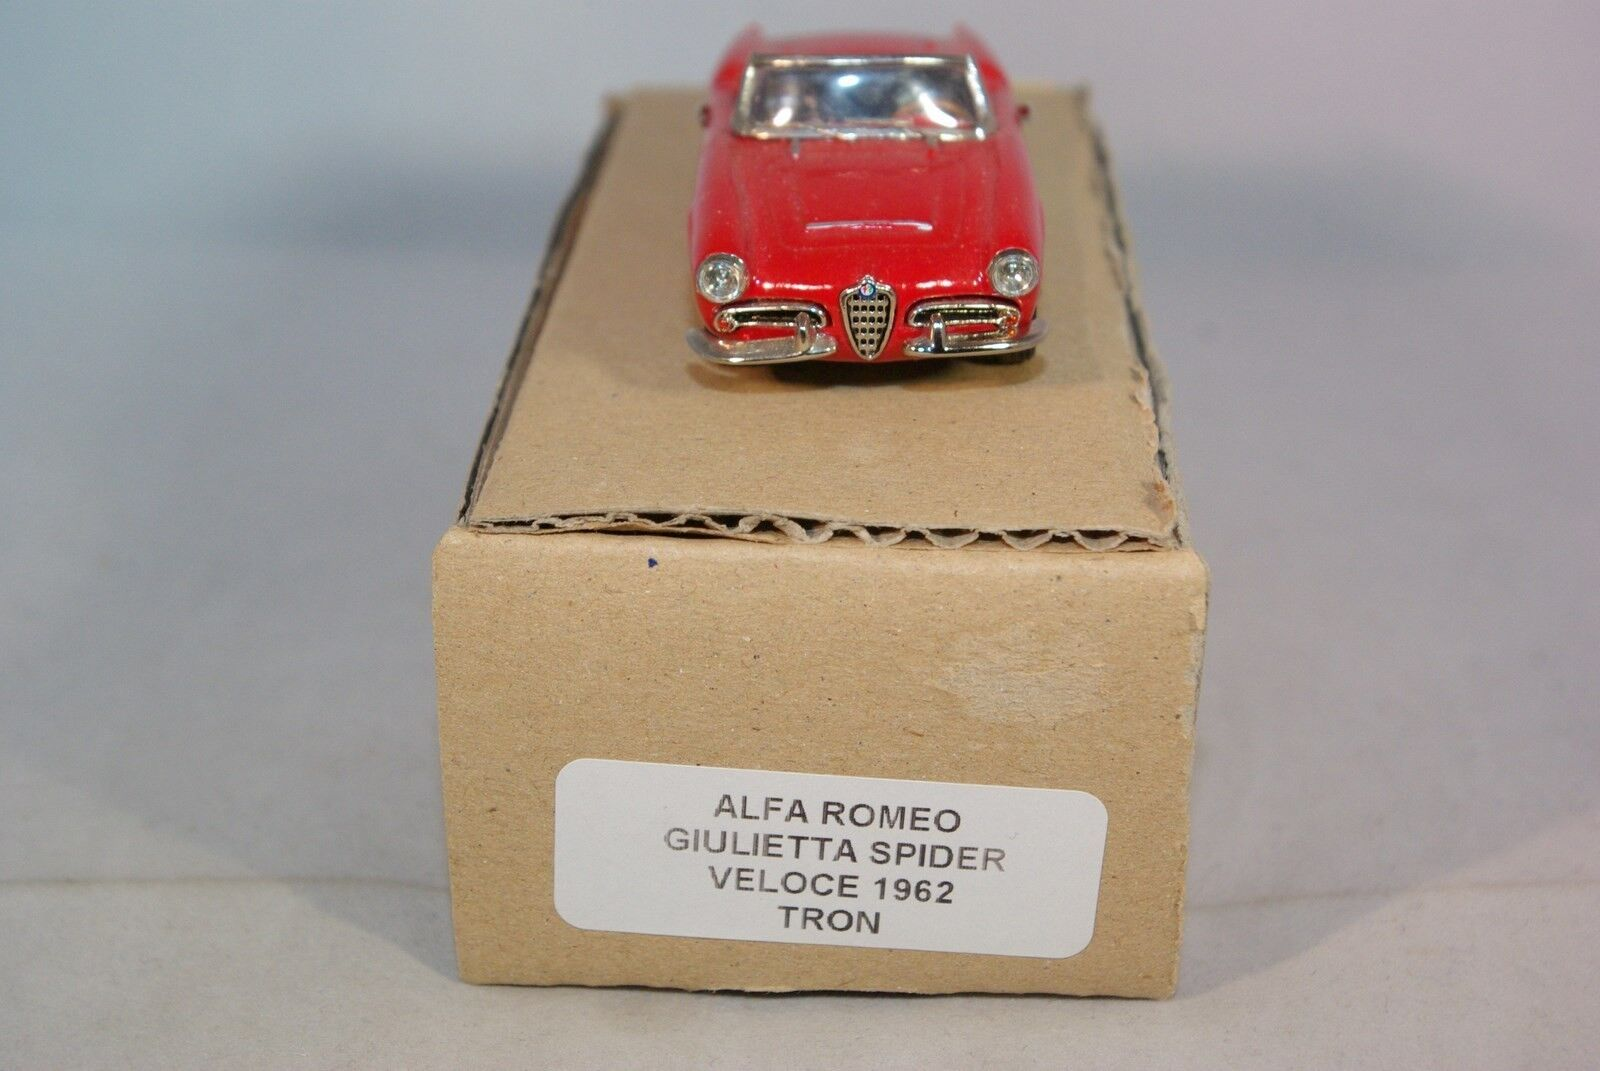 TRON ALFA ROMEO ROMEO ROMEO GIULIETTA VELOCE SPIDER 1962 RED MINT CONDITION 286430